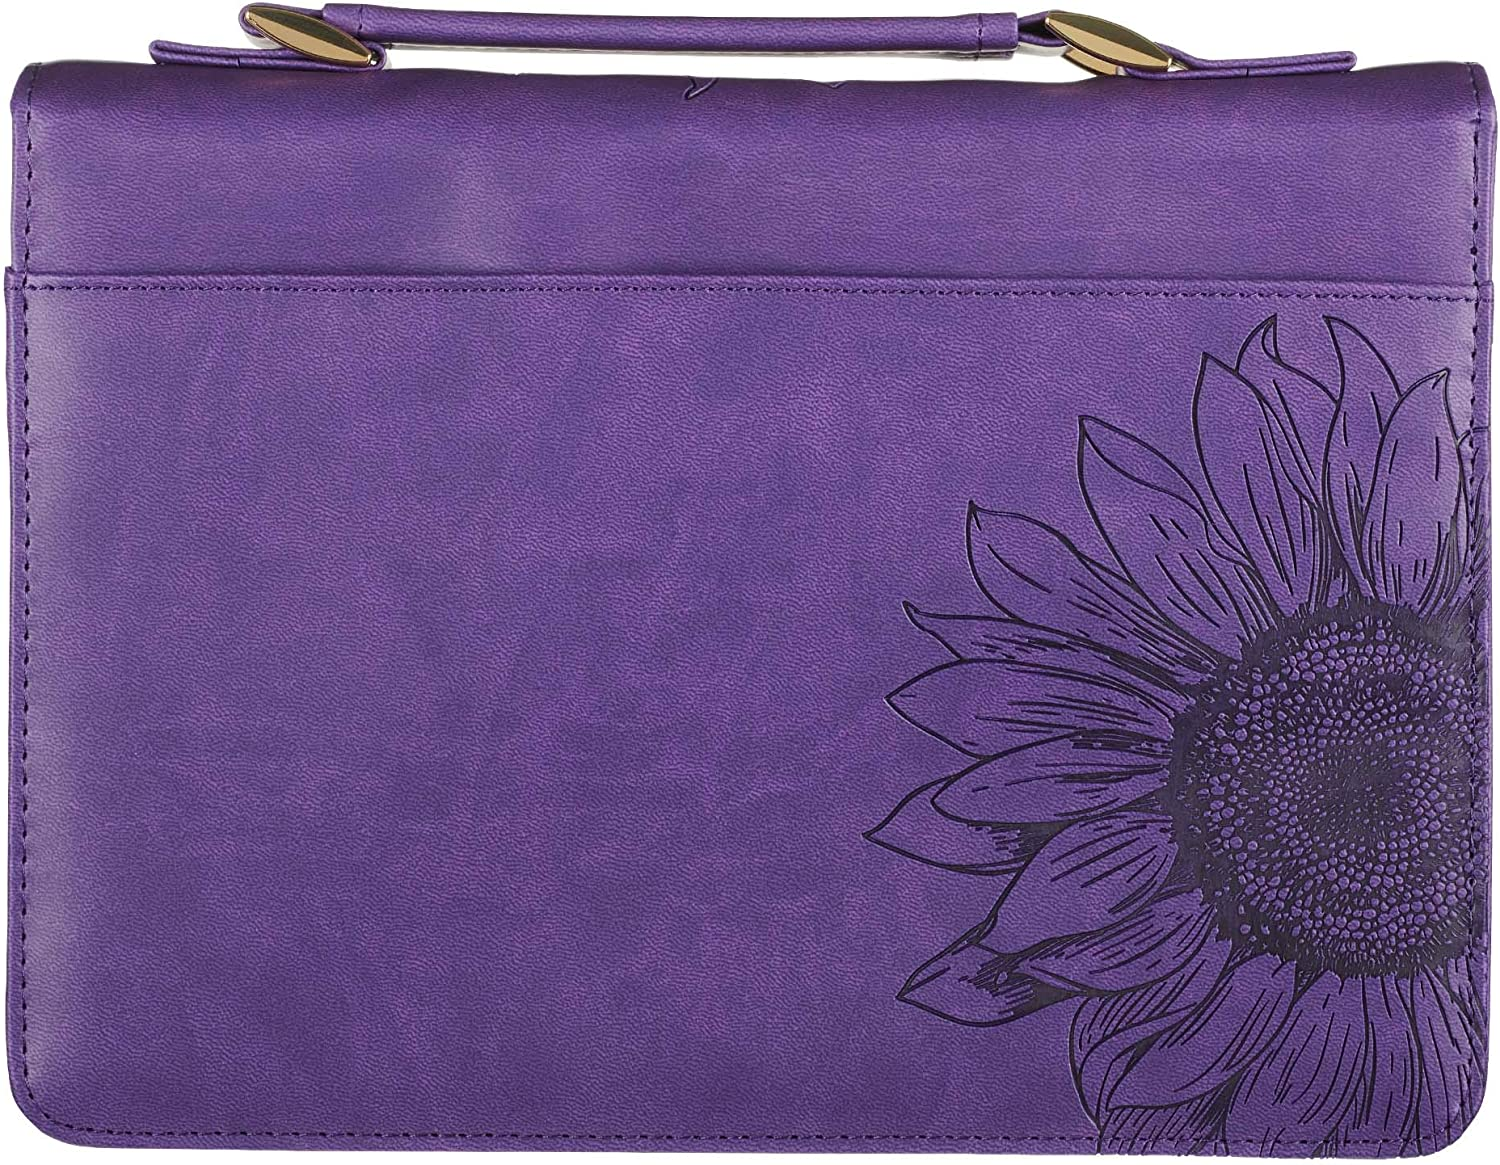 Medium Bible Case Book Cover Purple Sunflower Fashion Bible Cover Faux Leather She is Clothed w//Strength Dignity Proverbs 31 Woman